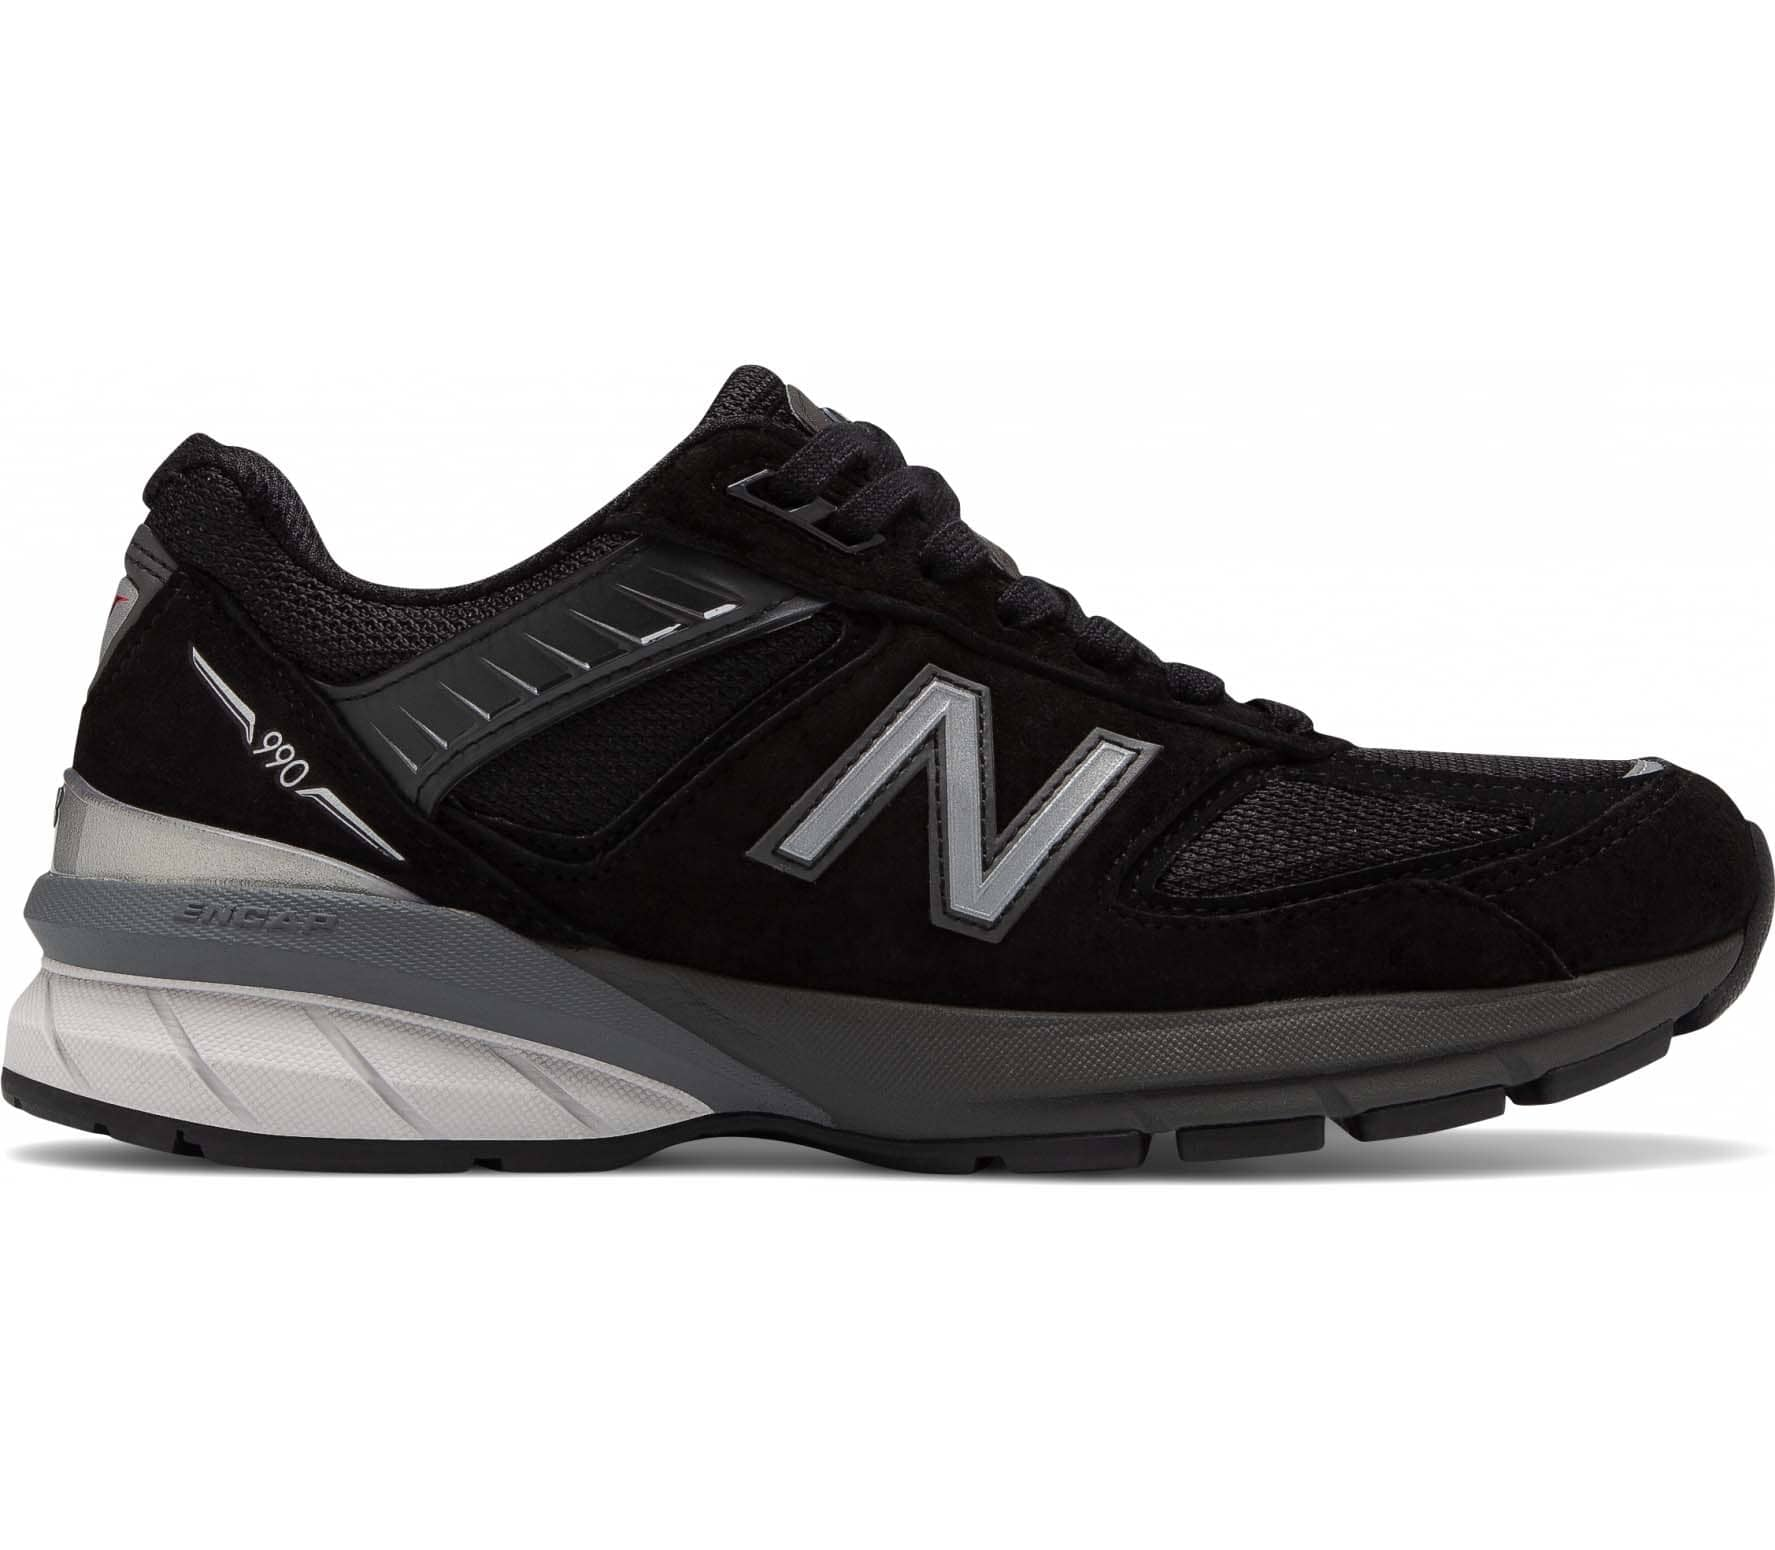 New Balance 990v5 Dames Sneakers zwart